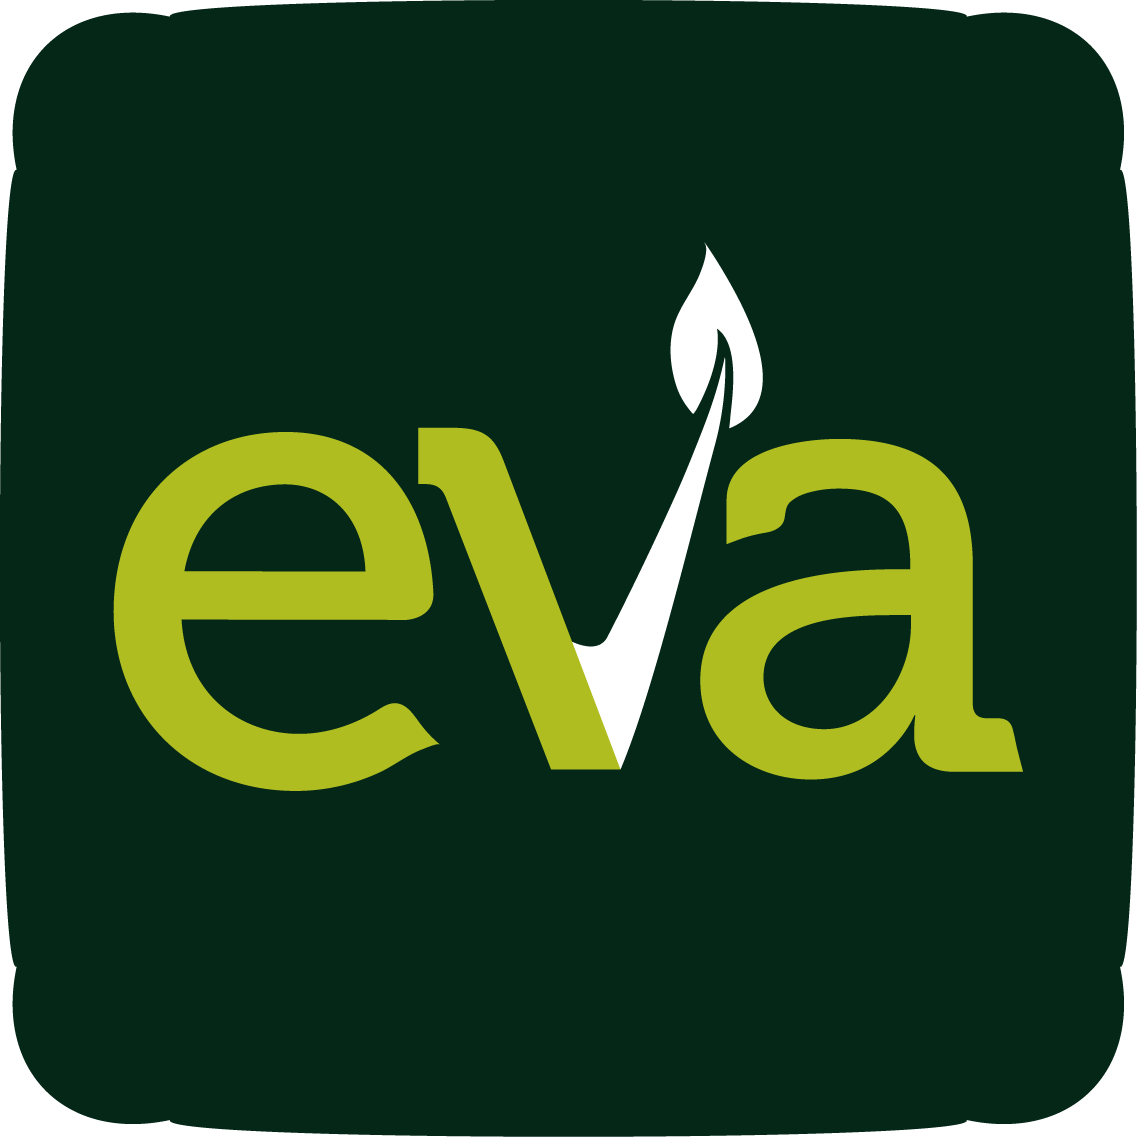 Ethisch Vegetarisch Alternatief (EVA)logo